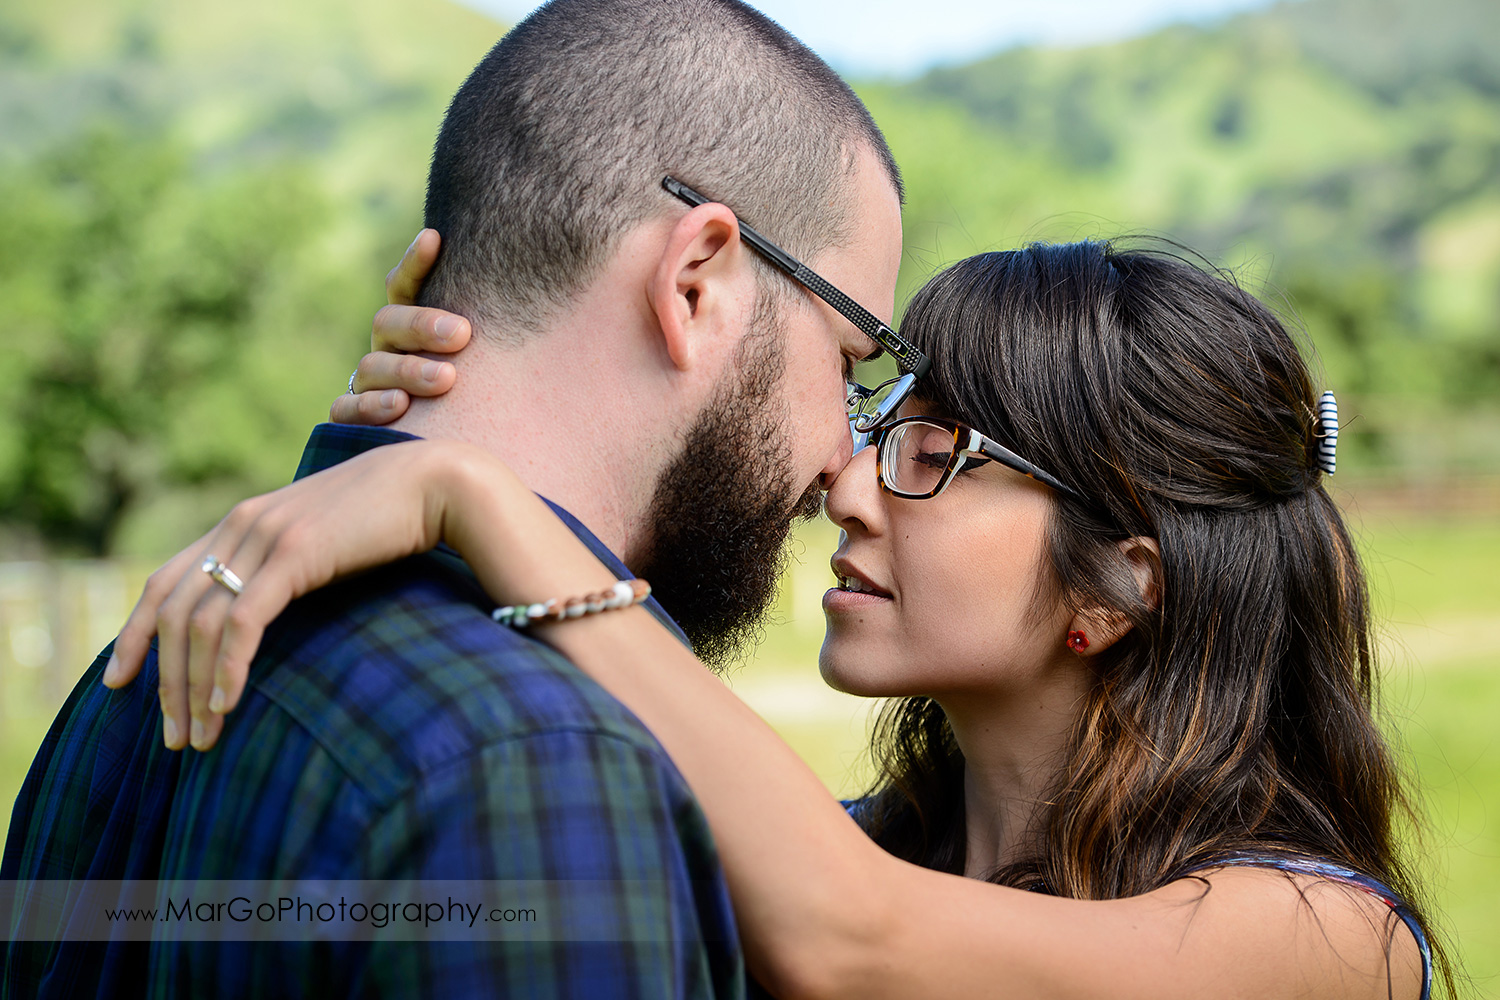 close-up portrait of woman in blue dress and man in blue shirt touching noses during engagement session at Sunol Regional Wilderness